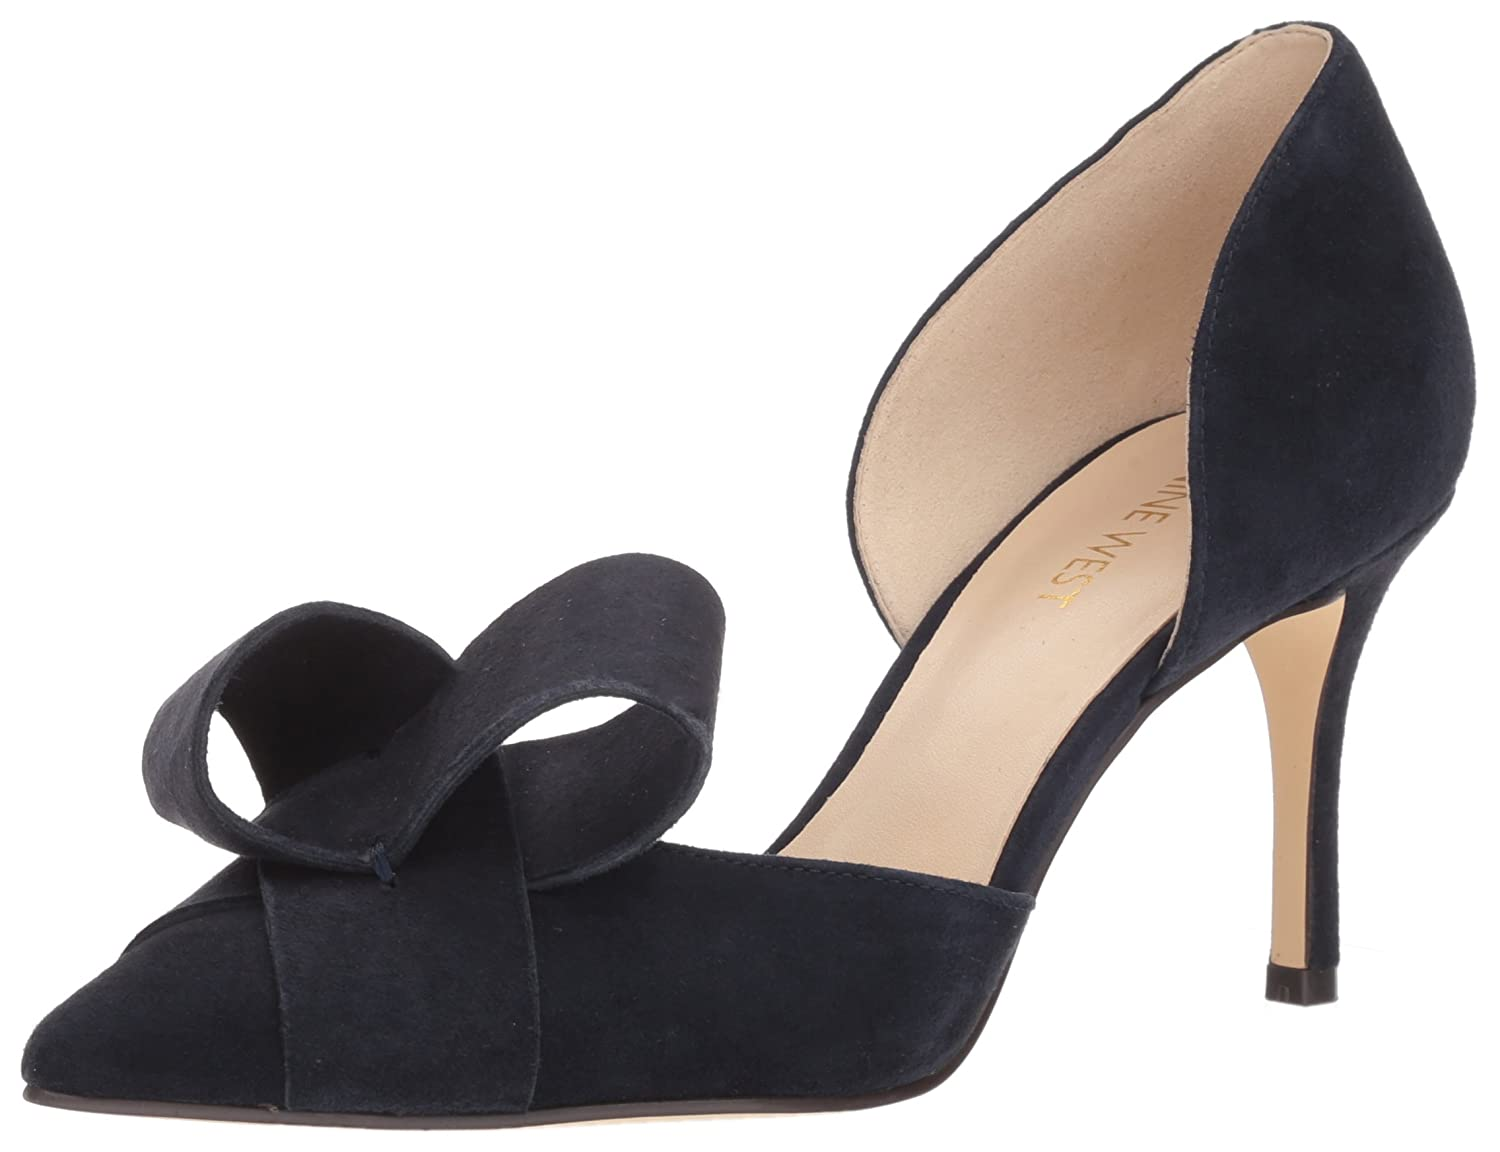 Nine West Women's Mcfally Suede Pump B072Q6FGDL 10.5 B(M) US|Navy Suede